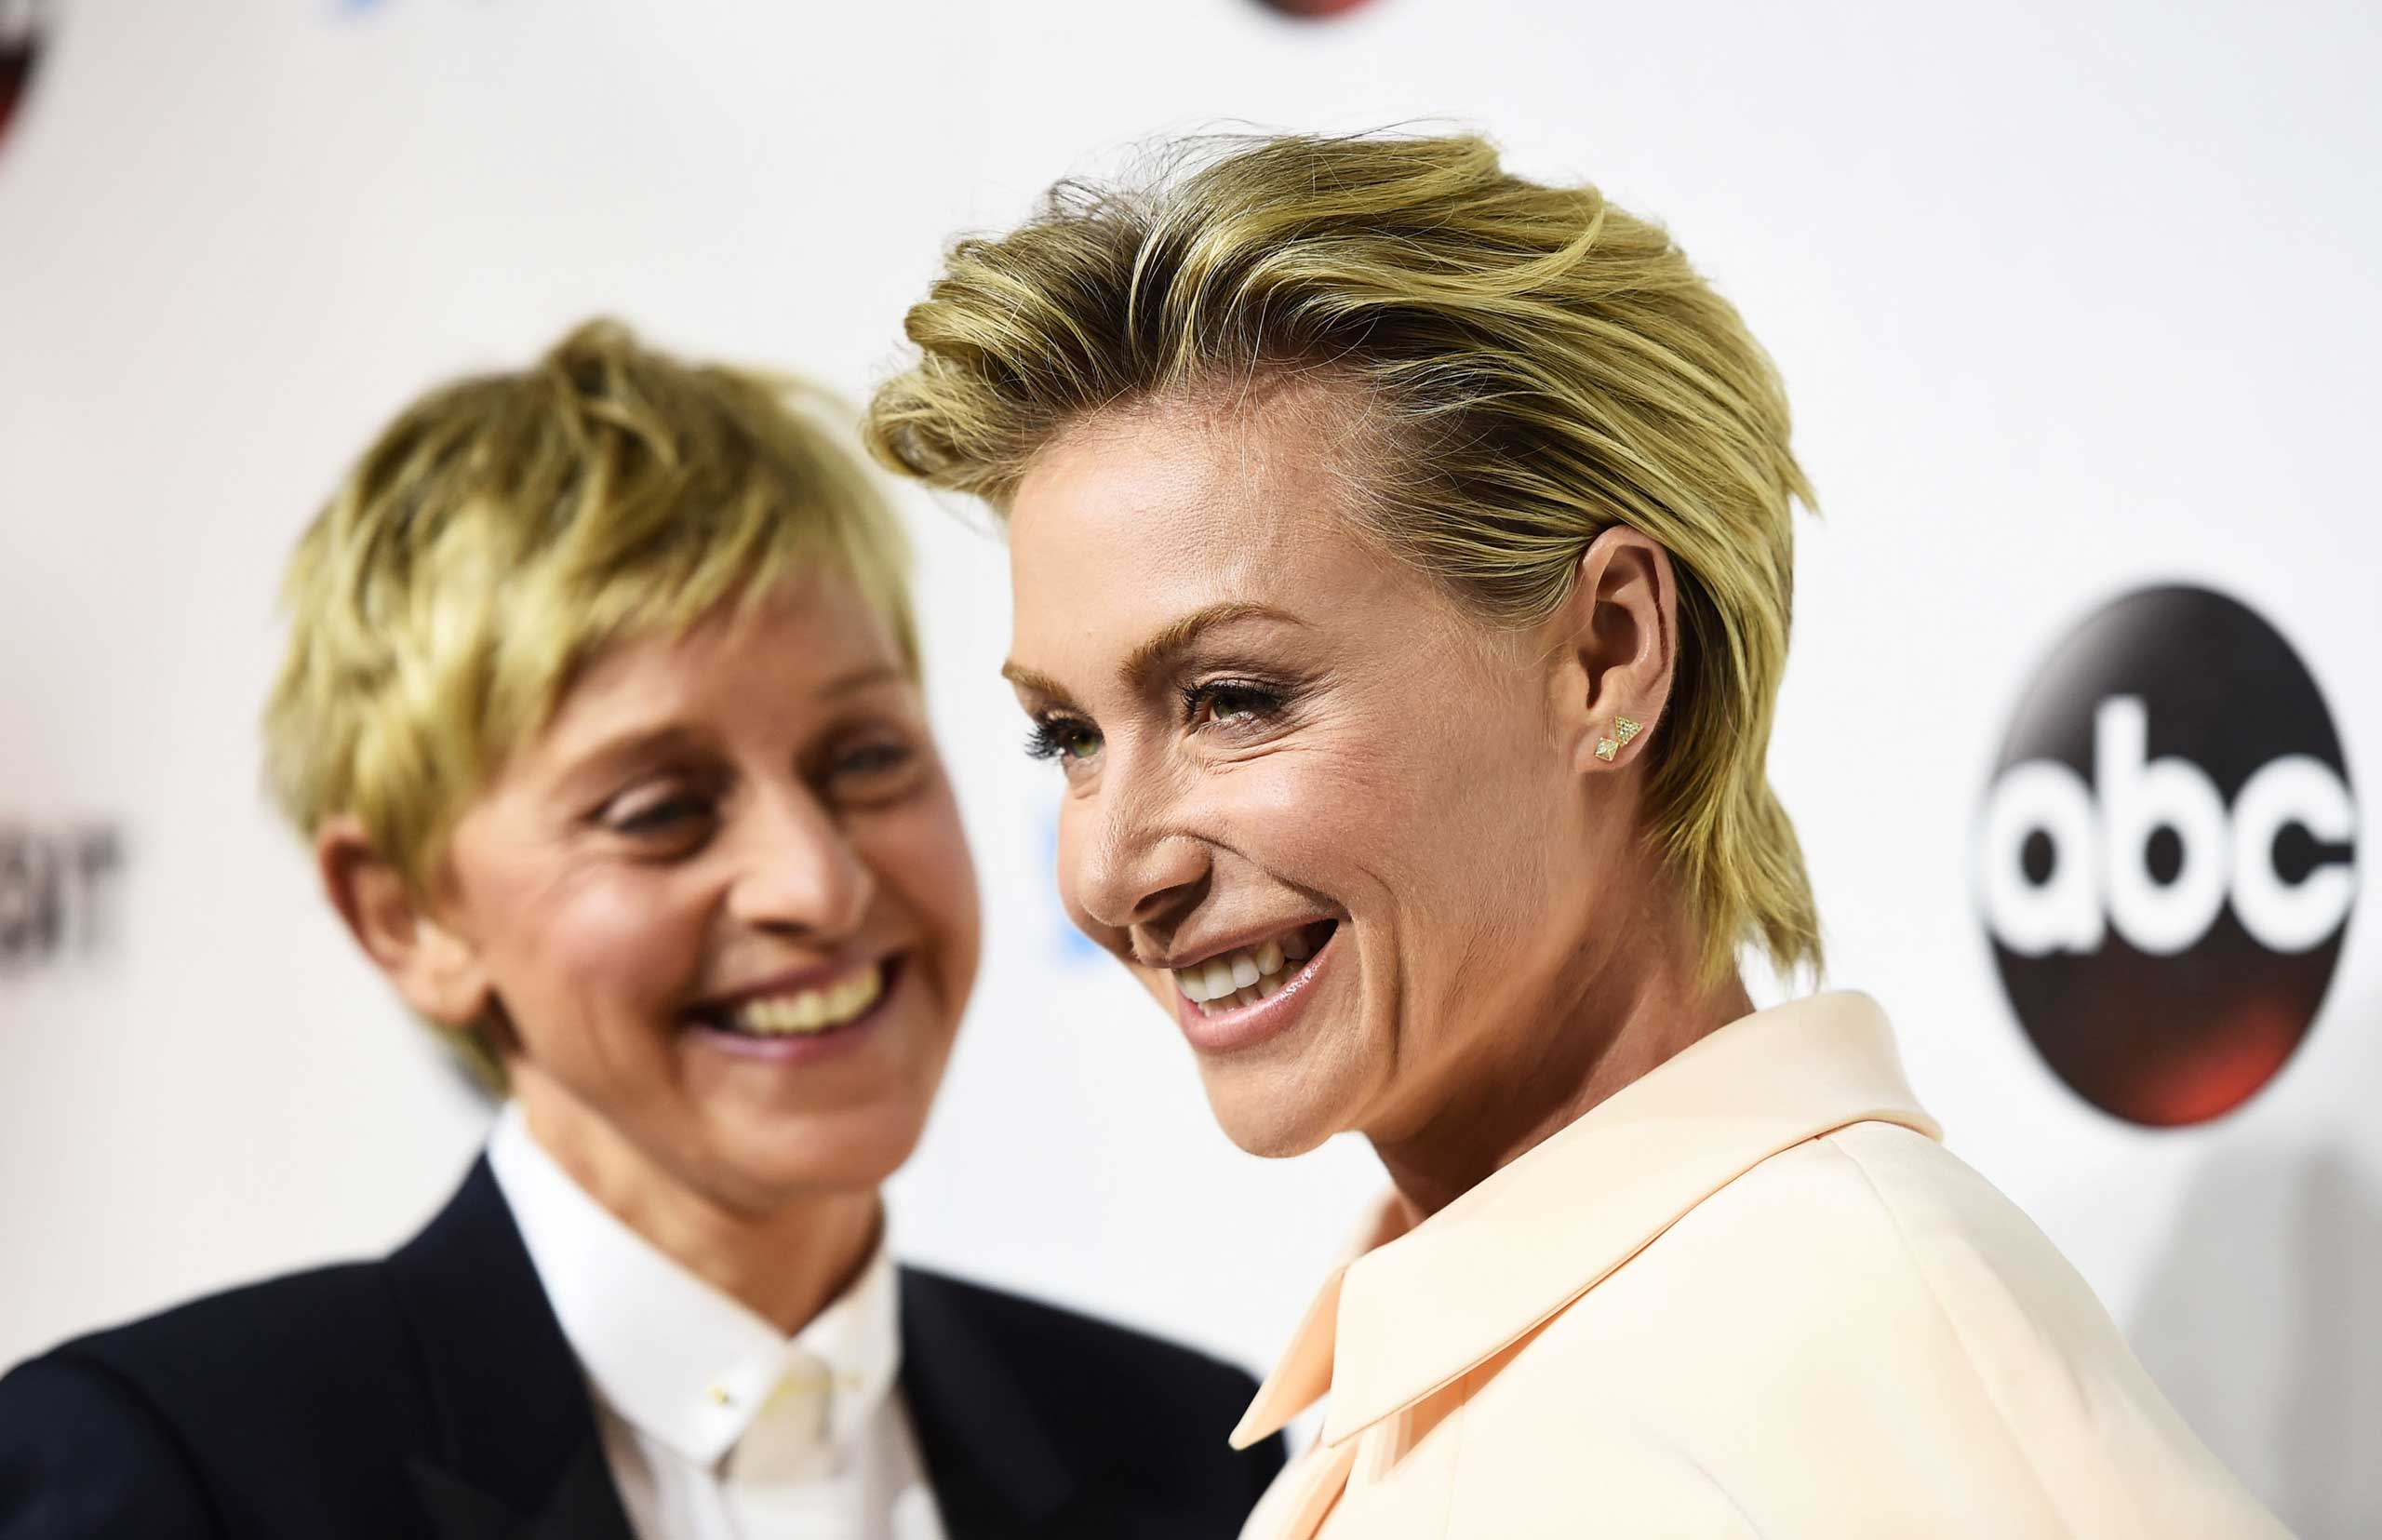 DeGeneres (L) and actress Portia de Rossi arrive at the #TGIT Premiere Event hosted by Twitter at Palihouse Holloway in West Hollywood, Calif. on Sept. 20, 2014.